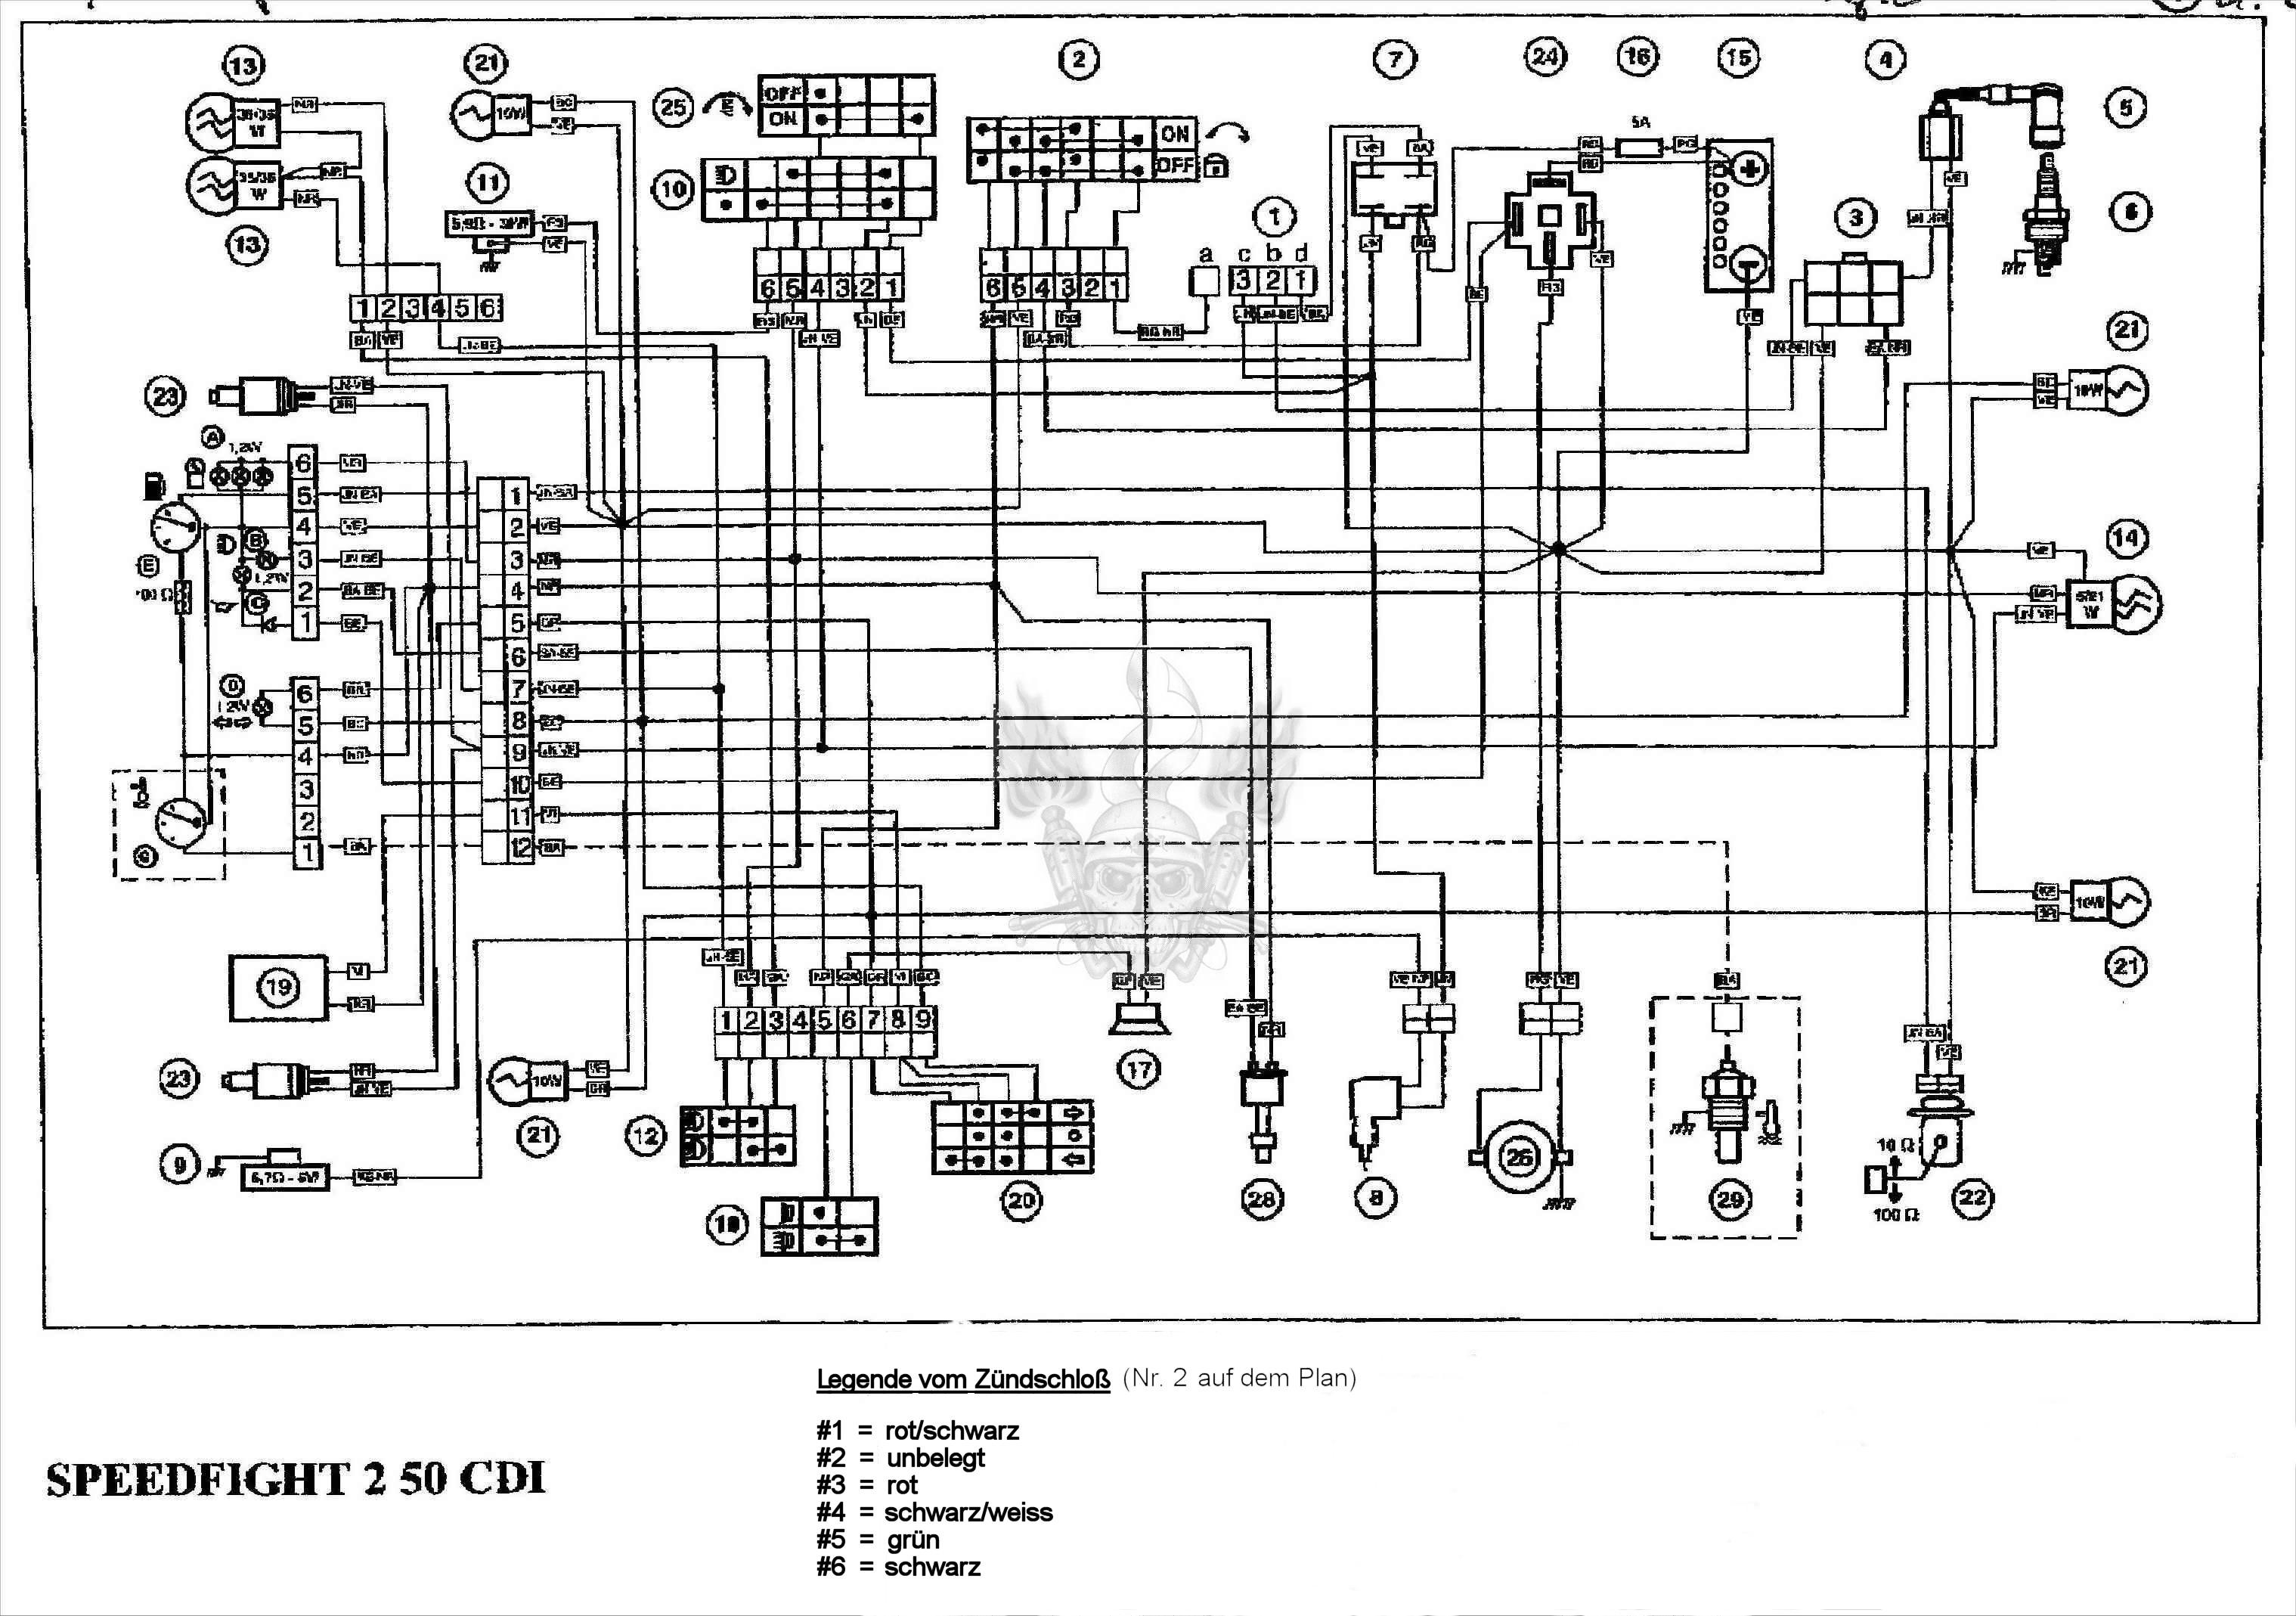 hight resolution of peugeot scooter wiring diagrams download moto schem peugeot speedfight 2 moto schem peugeot speedfight 2